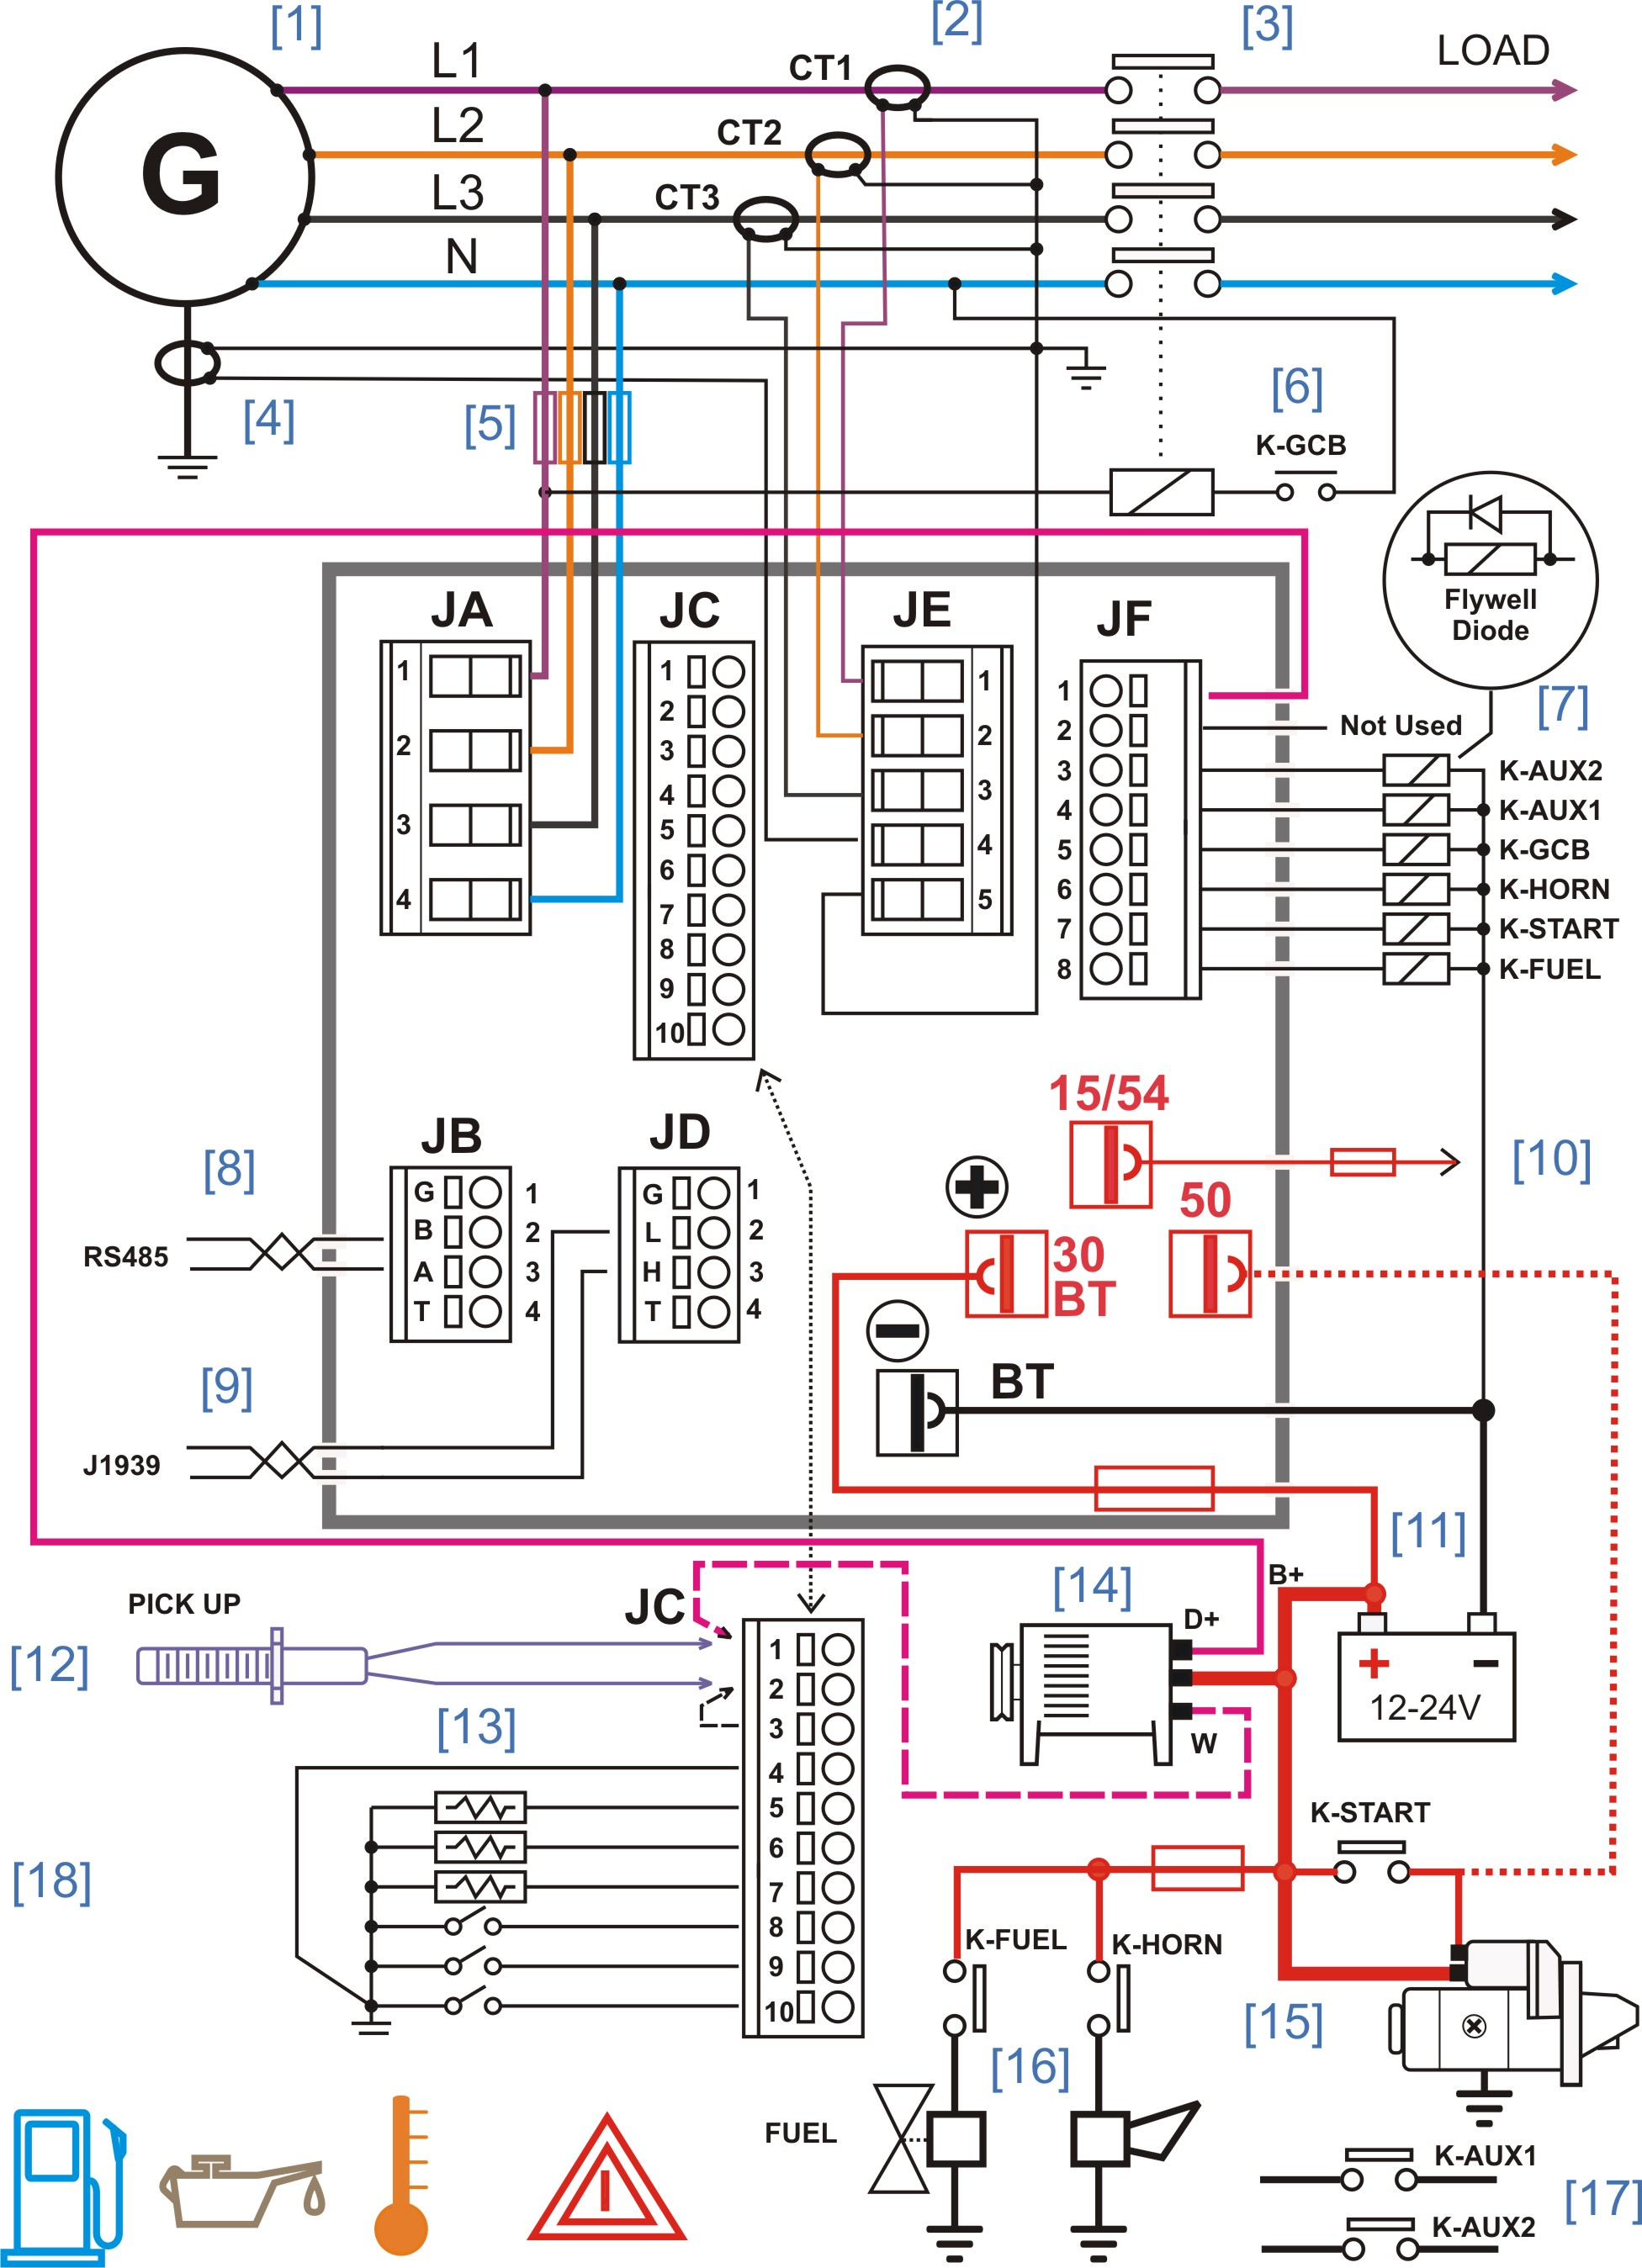 Diesel Generator Control Panel Wiring Diagram wiring diagram generator genset wiring to house \u2022 wiring diagrams wiring diagram for 20kw generac generator at bayanpartner.co